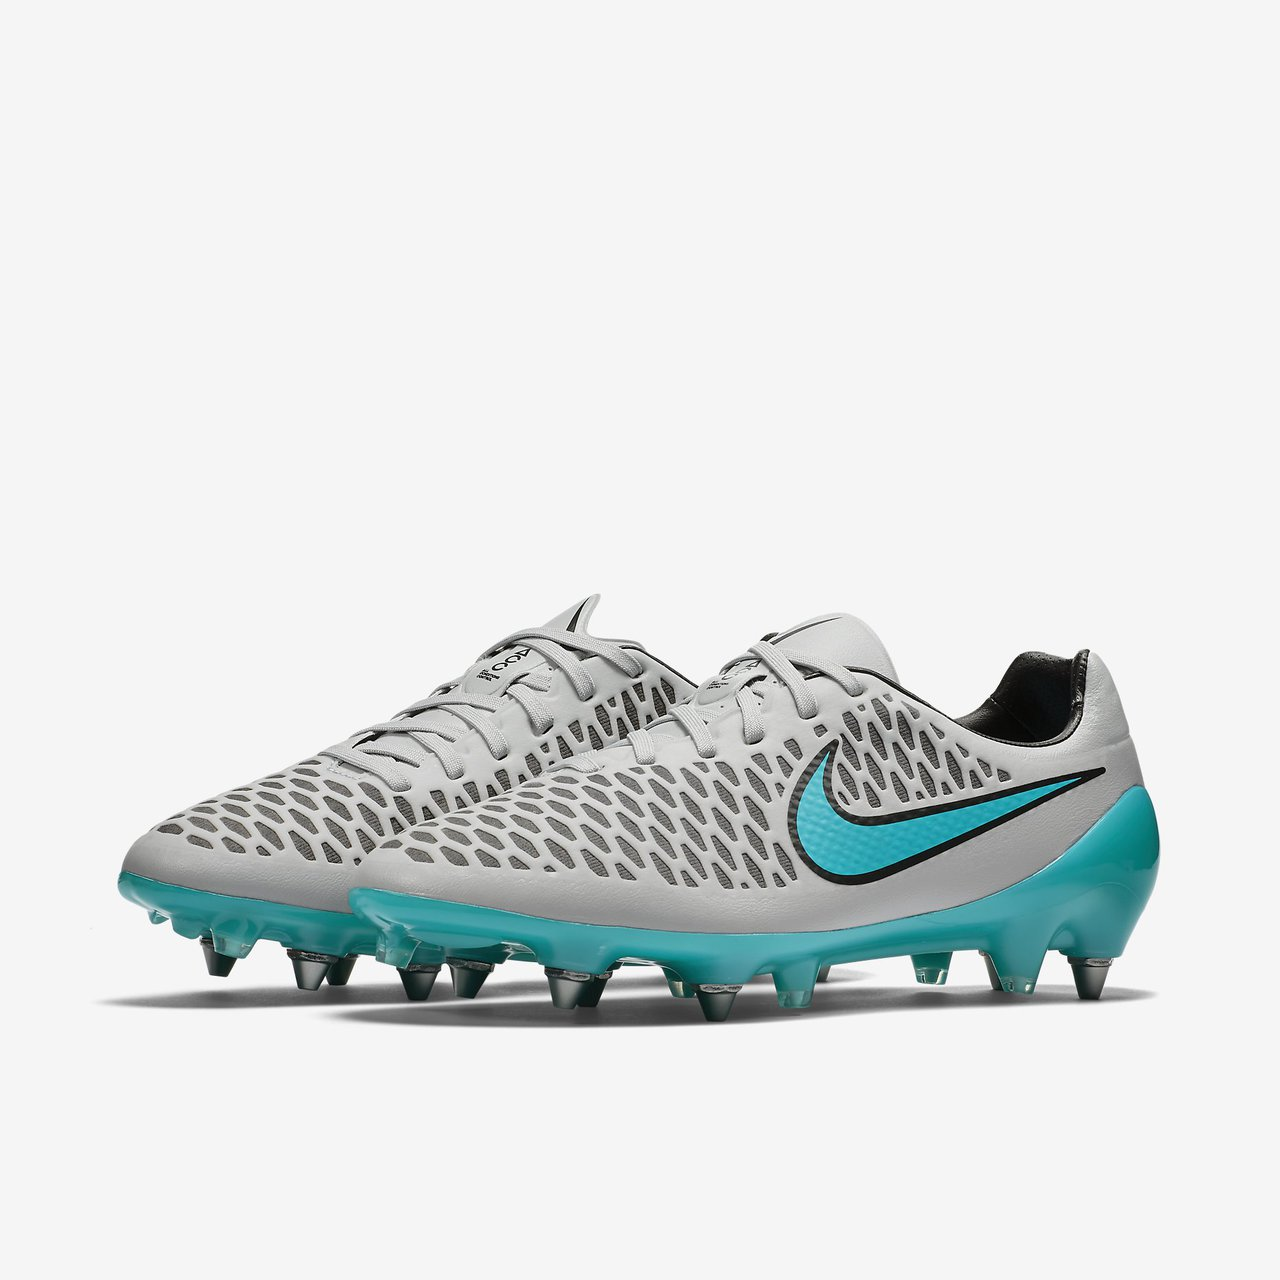 3779750235f4 ... where can i buy click to enlarge image nike magista opus sg pro wolf  d9654 331e4